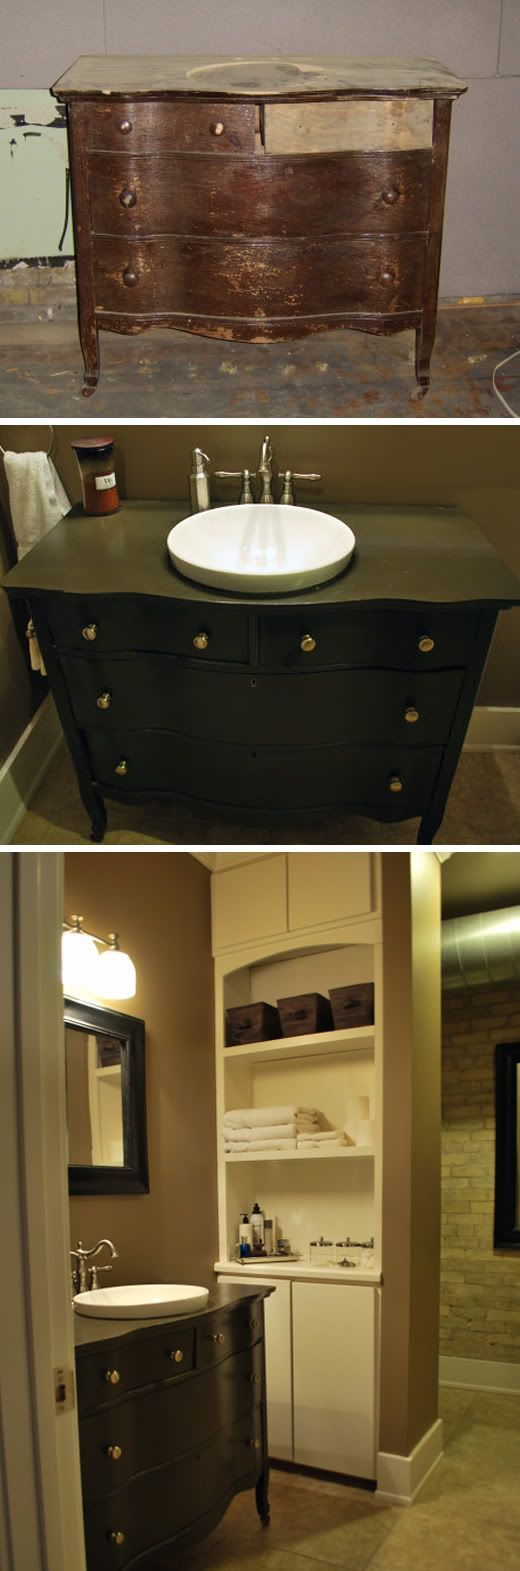 best 25 refurbished vanity ideas on pinterest rehabbed furniture desk to vanity diy and. Black Bedroom Furniture Sets. Home Design Ideas